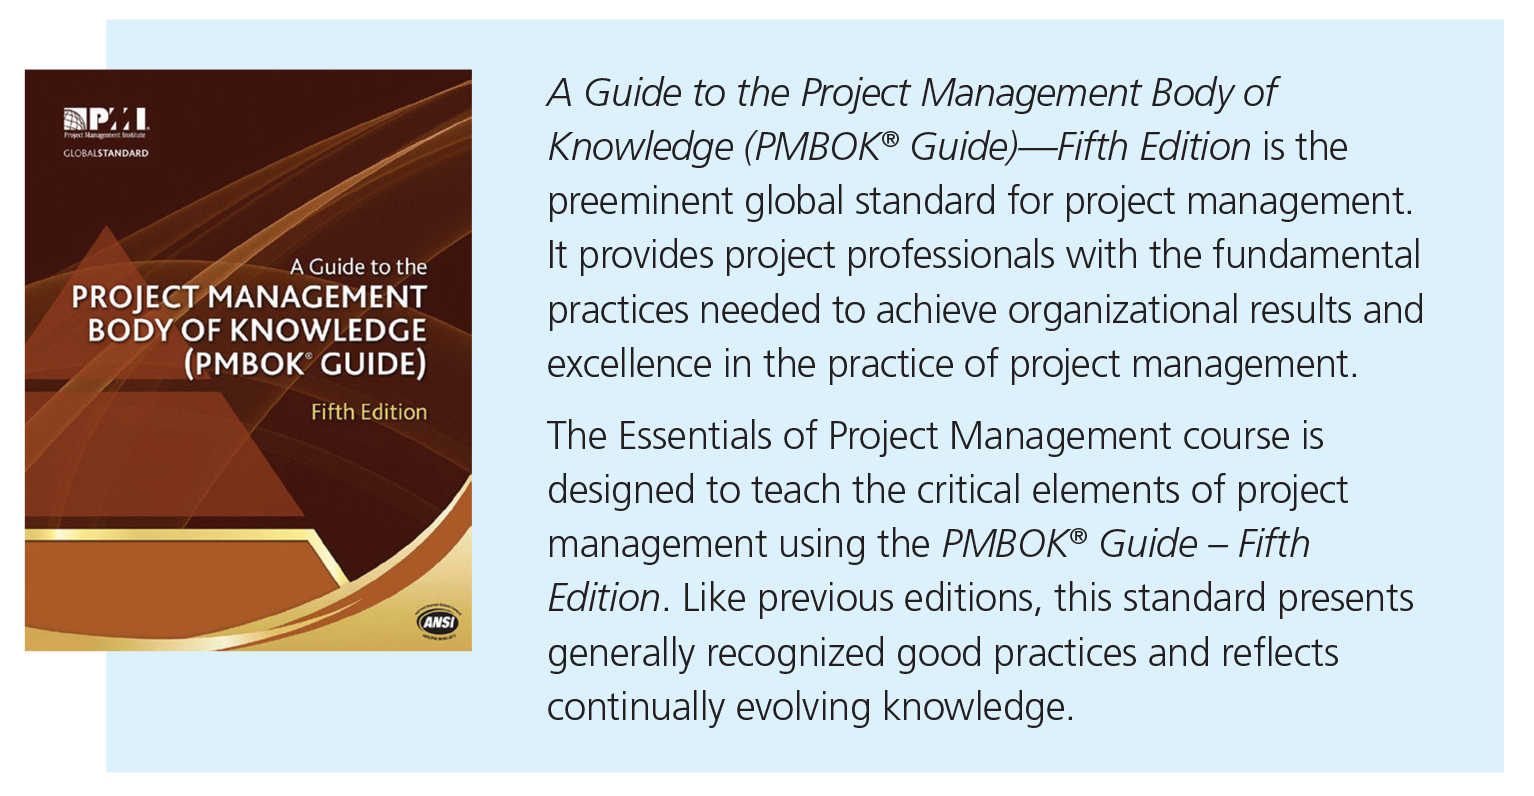 Project management professional - Prerequisites To Taking The Pmp